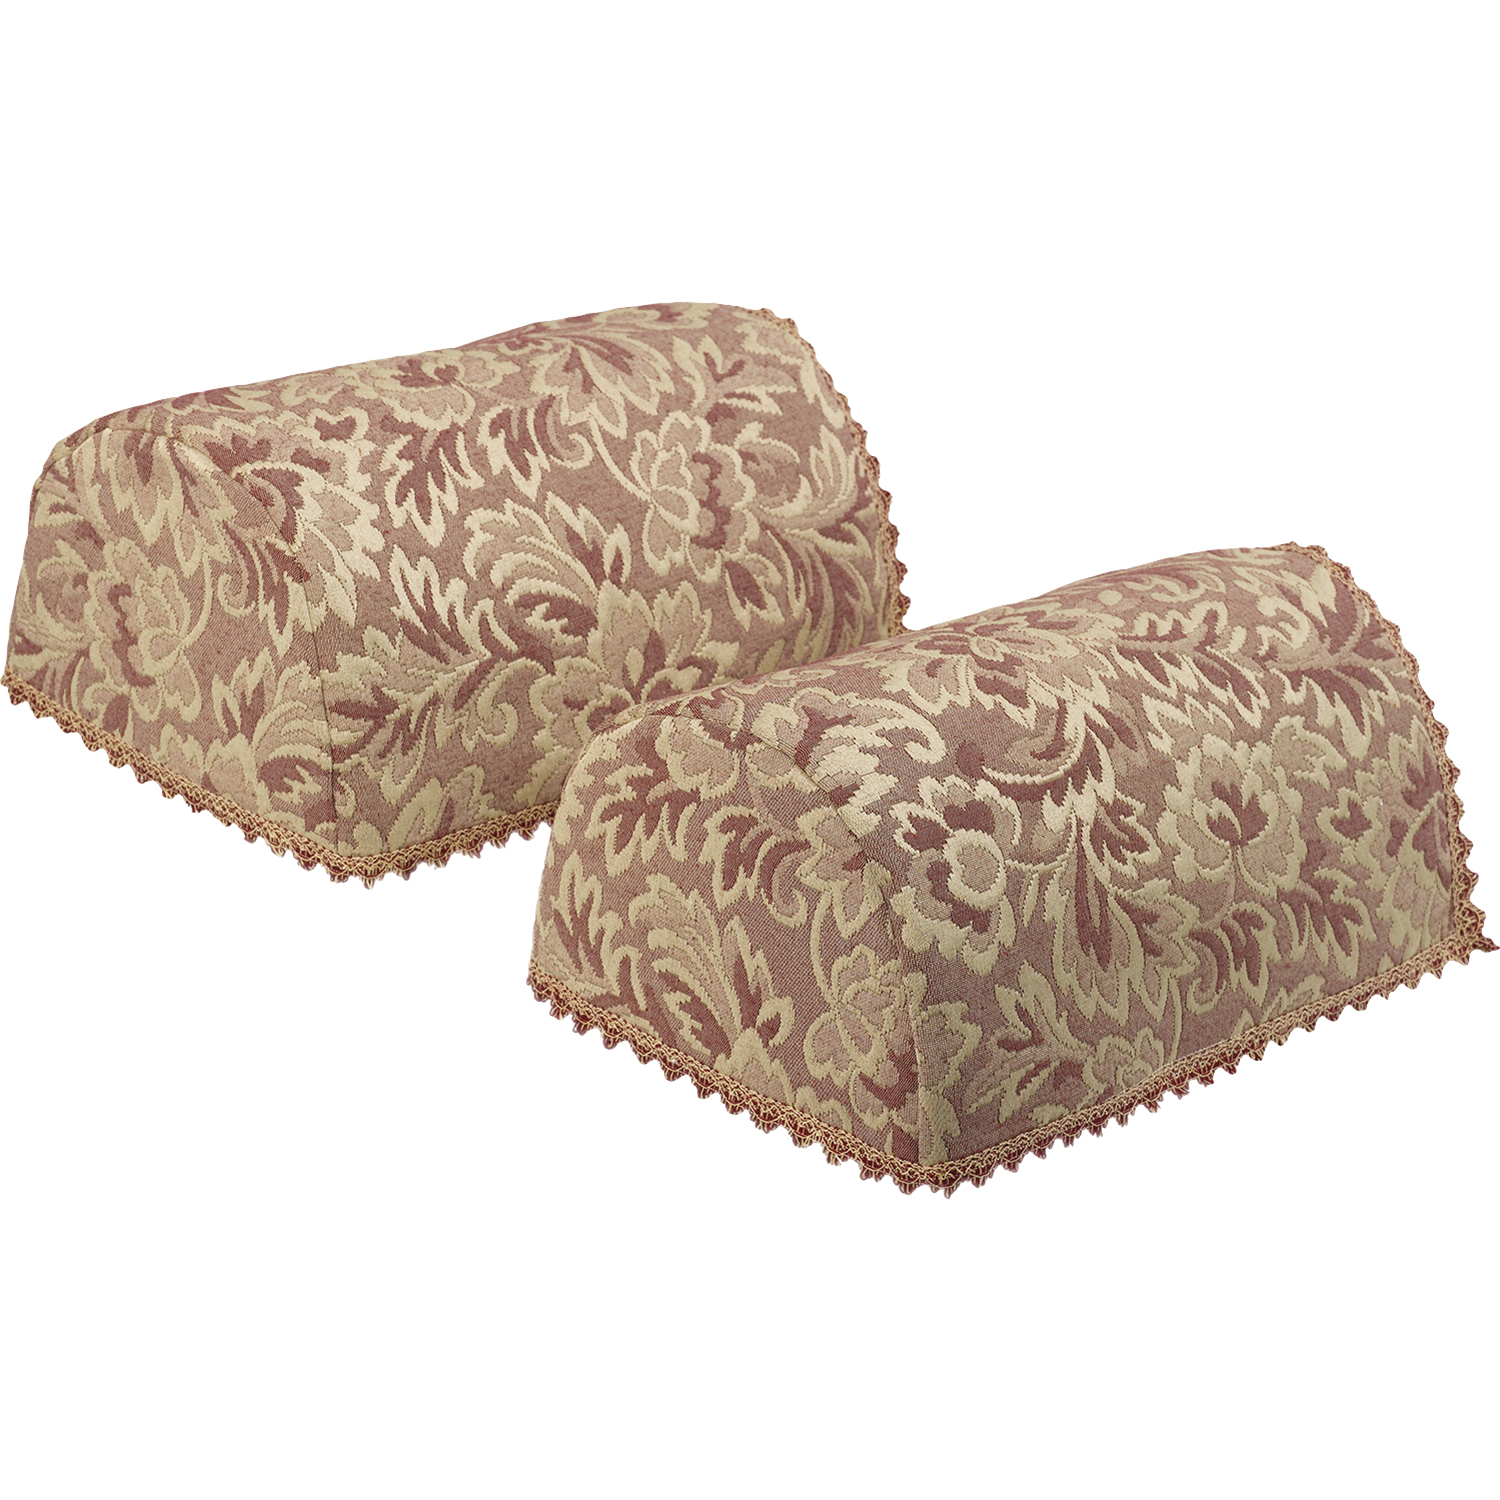 arm chair cap covers backpack with cooler decorative pair of round floral jacquard napery